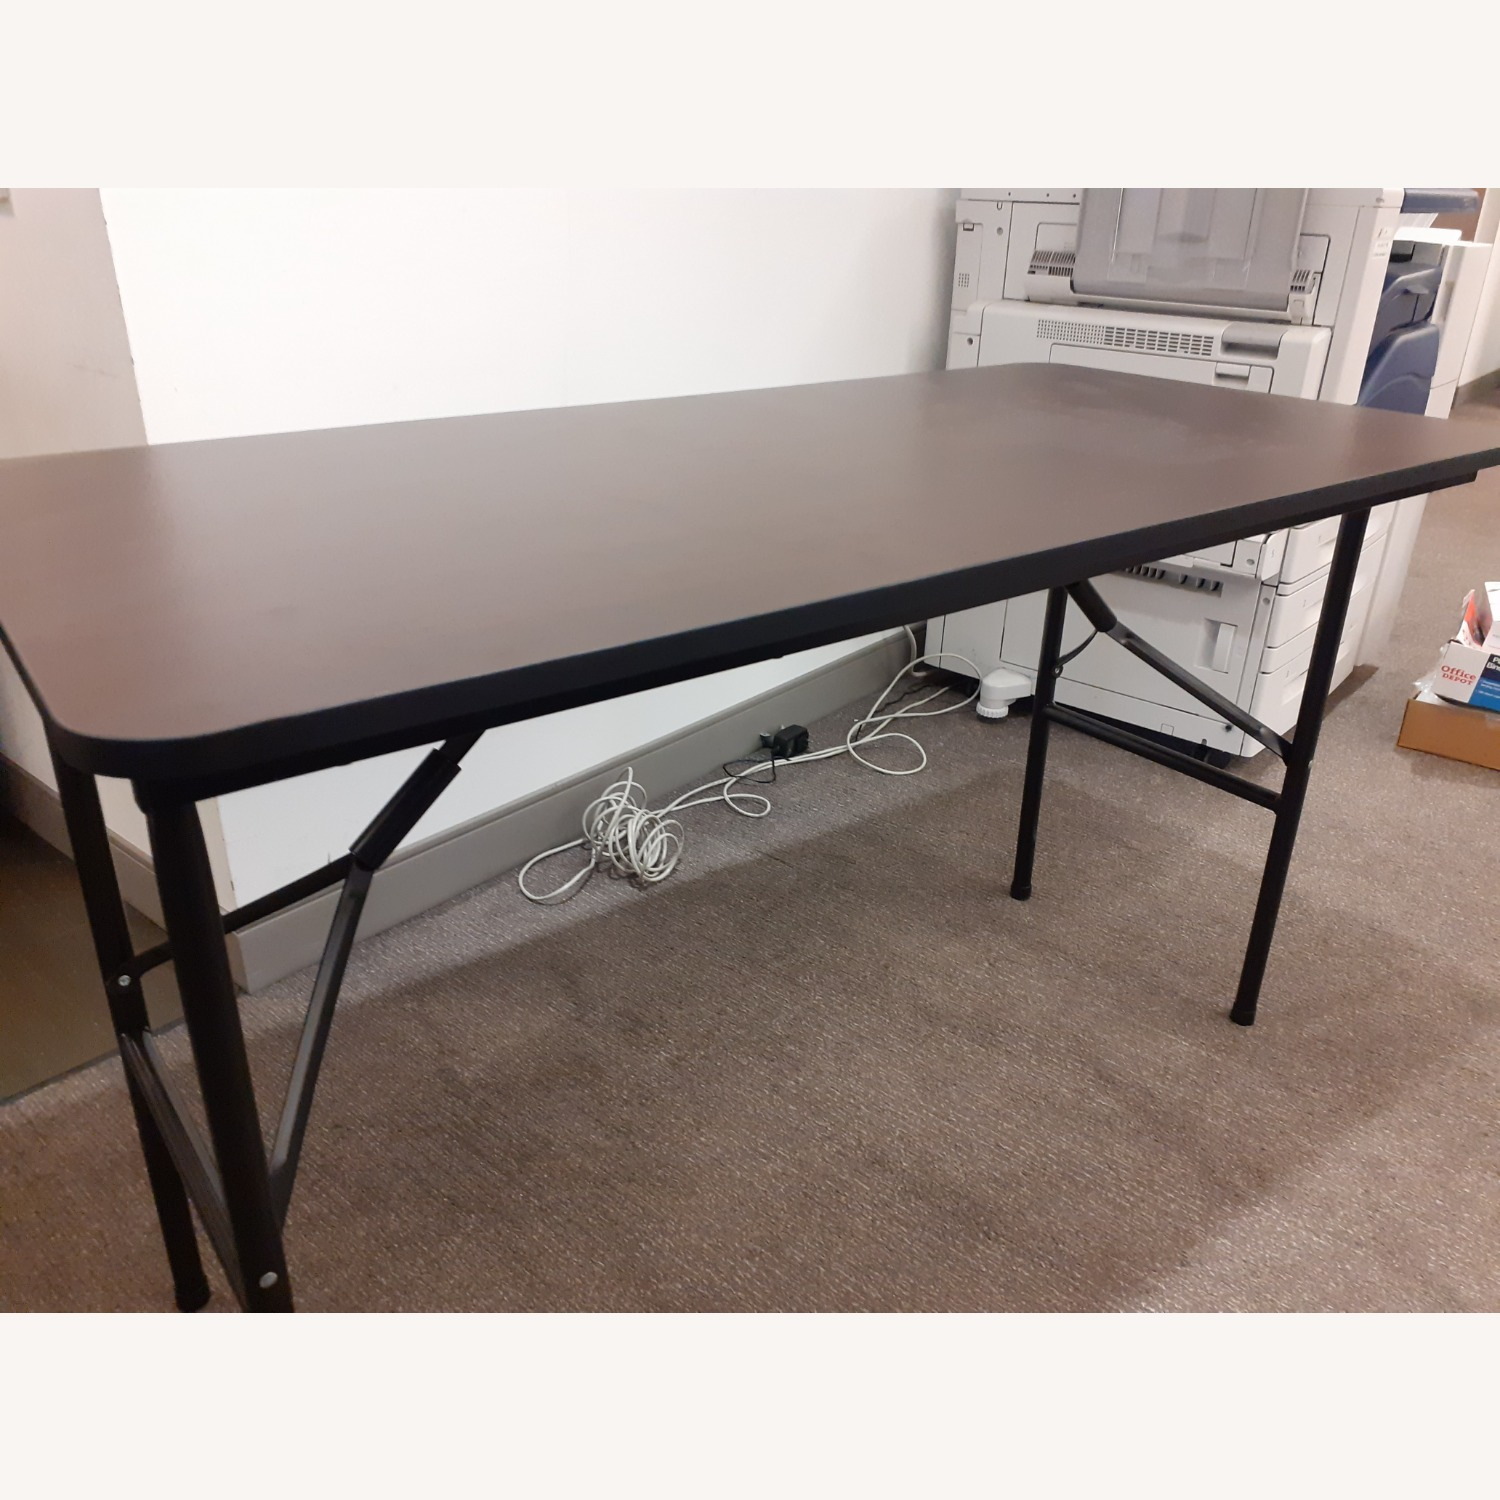 Iceberg Economy Rectangle Folding Table - image-11